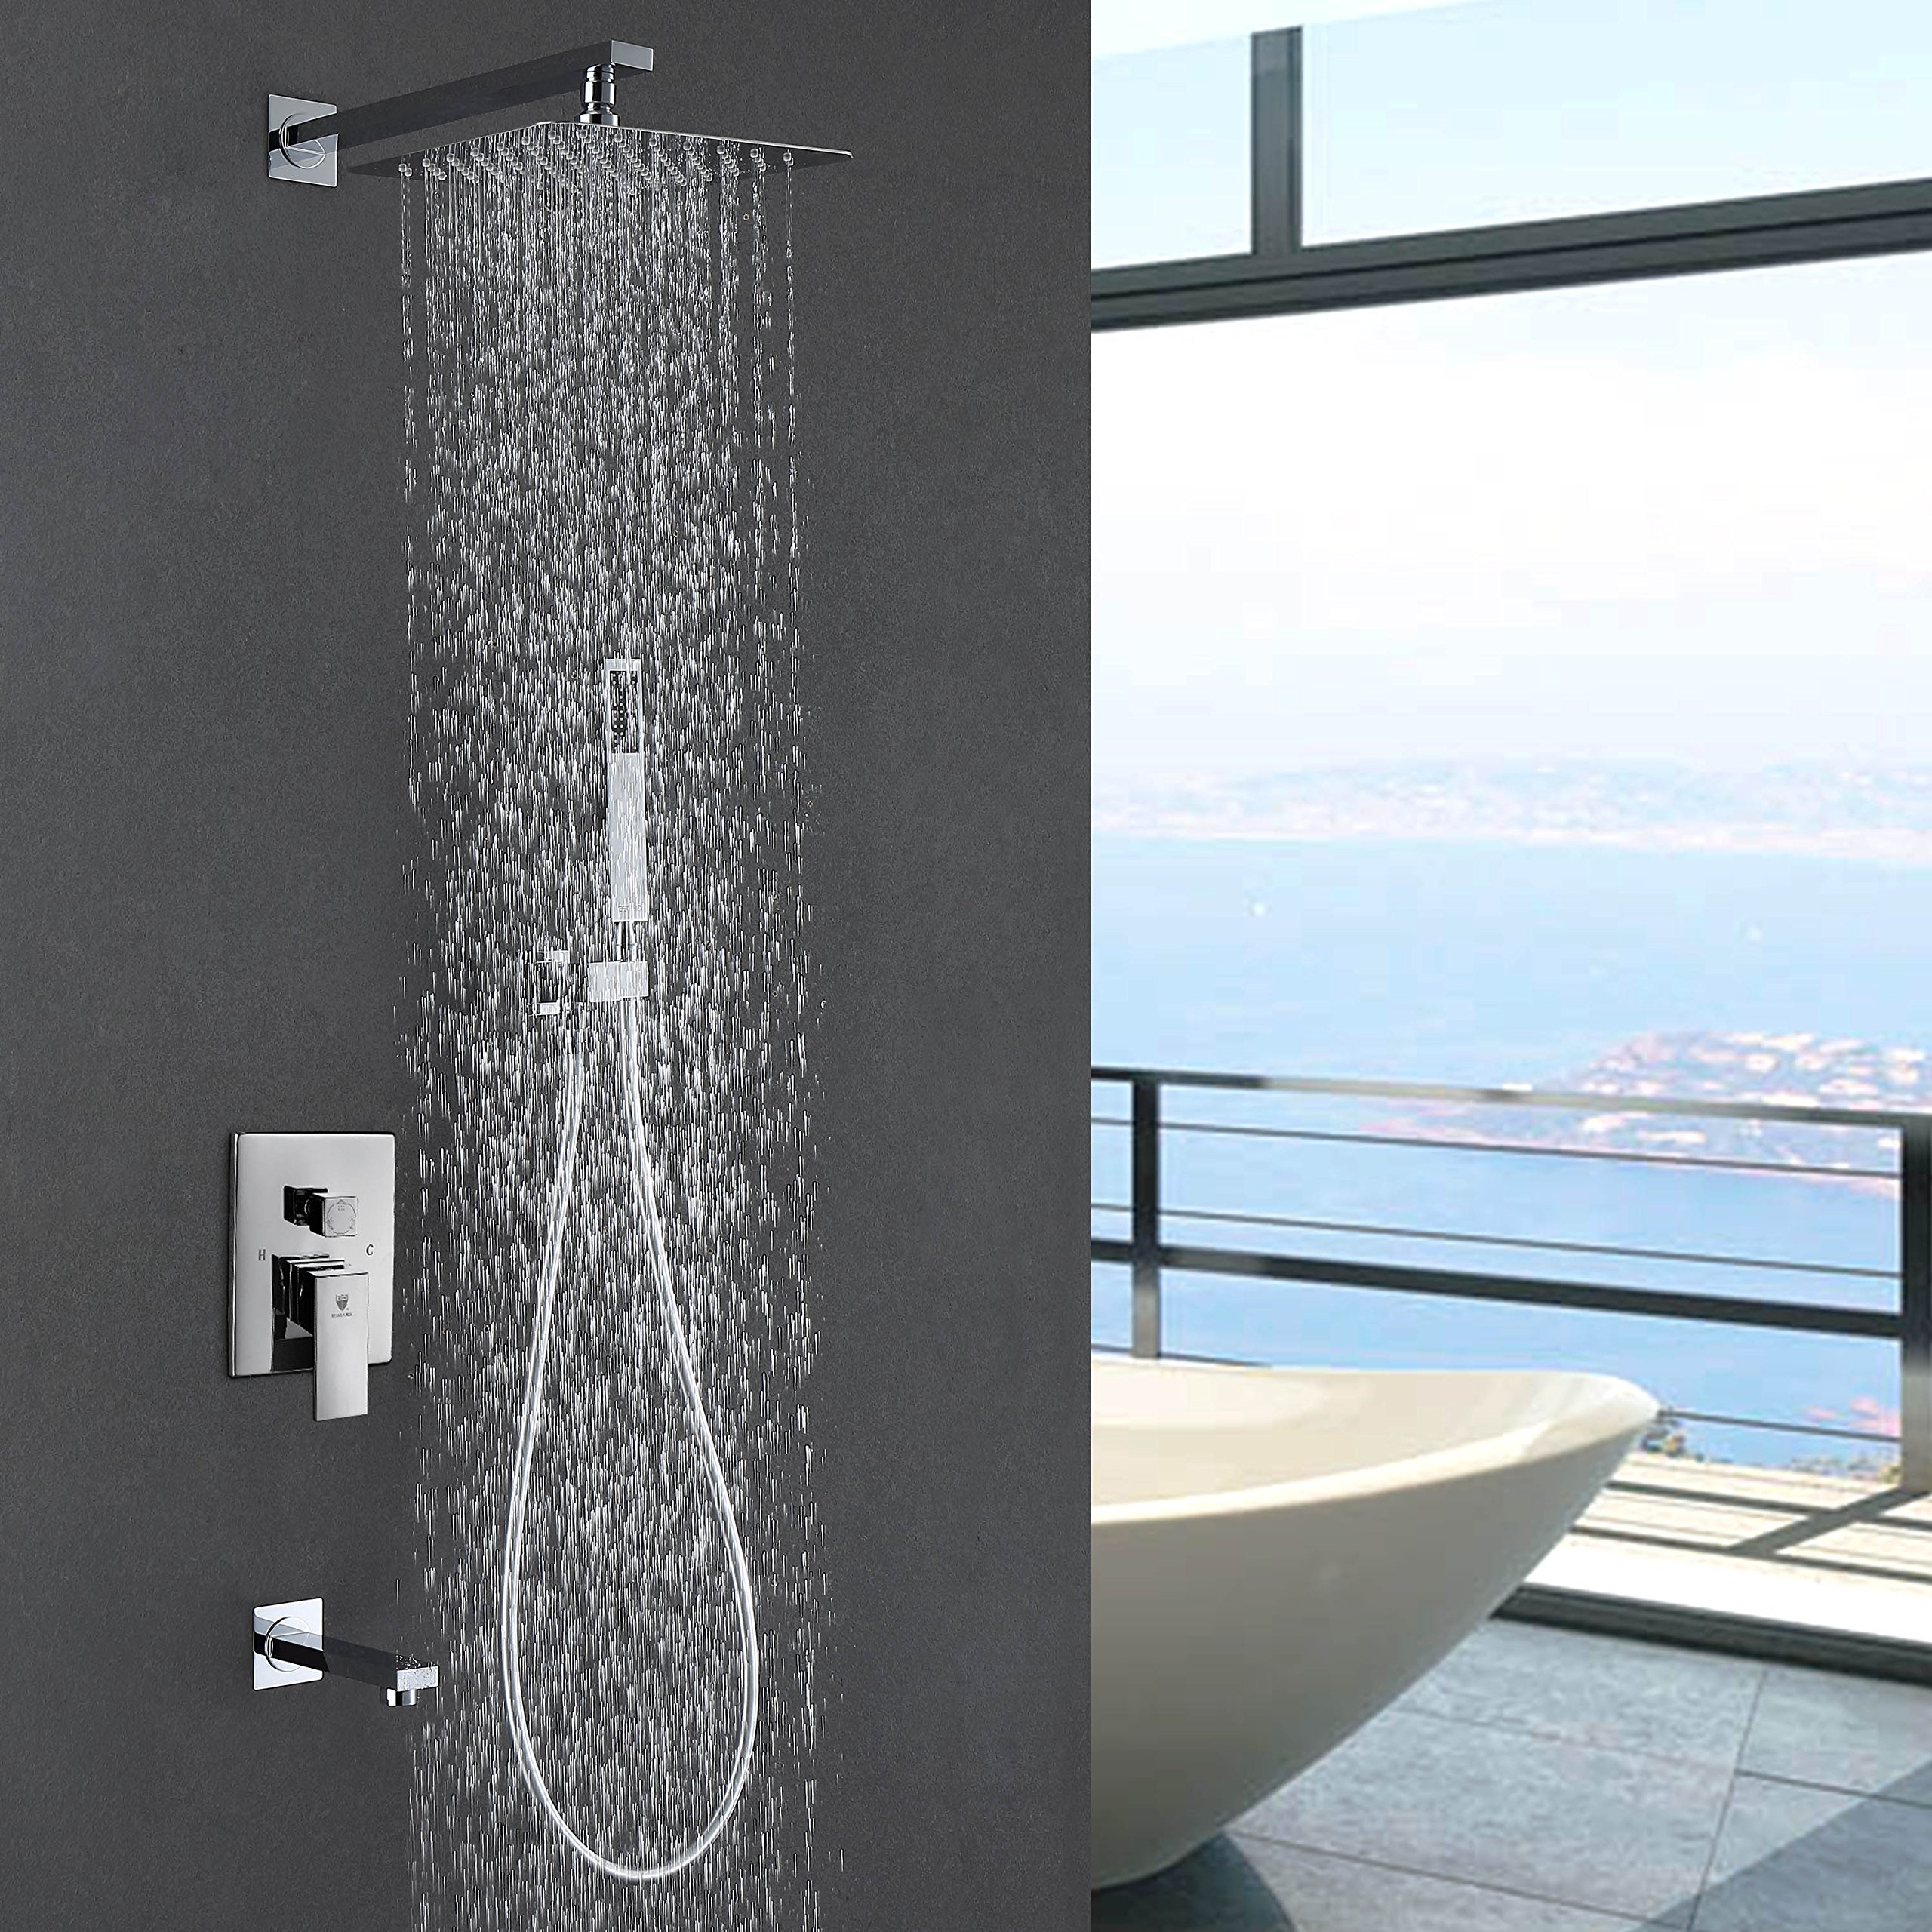 HIMARK Luxury Rain Shower Systems Wall Mounted Shower Combo Set with High Pressure 10 Inch Square Rain Shower Head and Handheld Tub Shower Faucet Set Polished Chrome